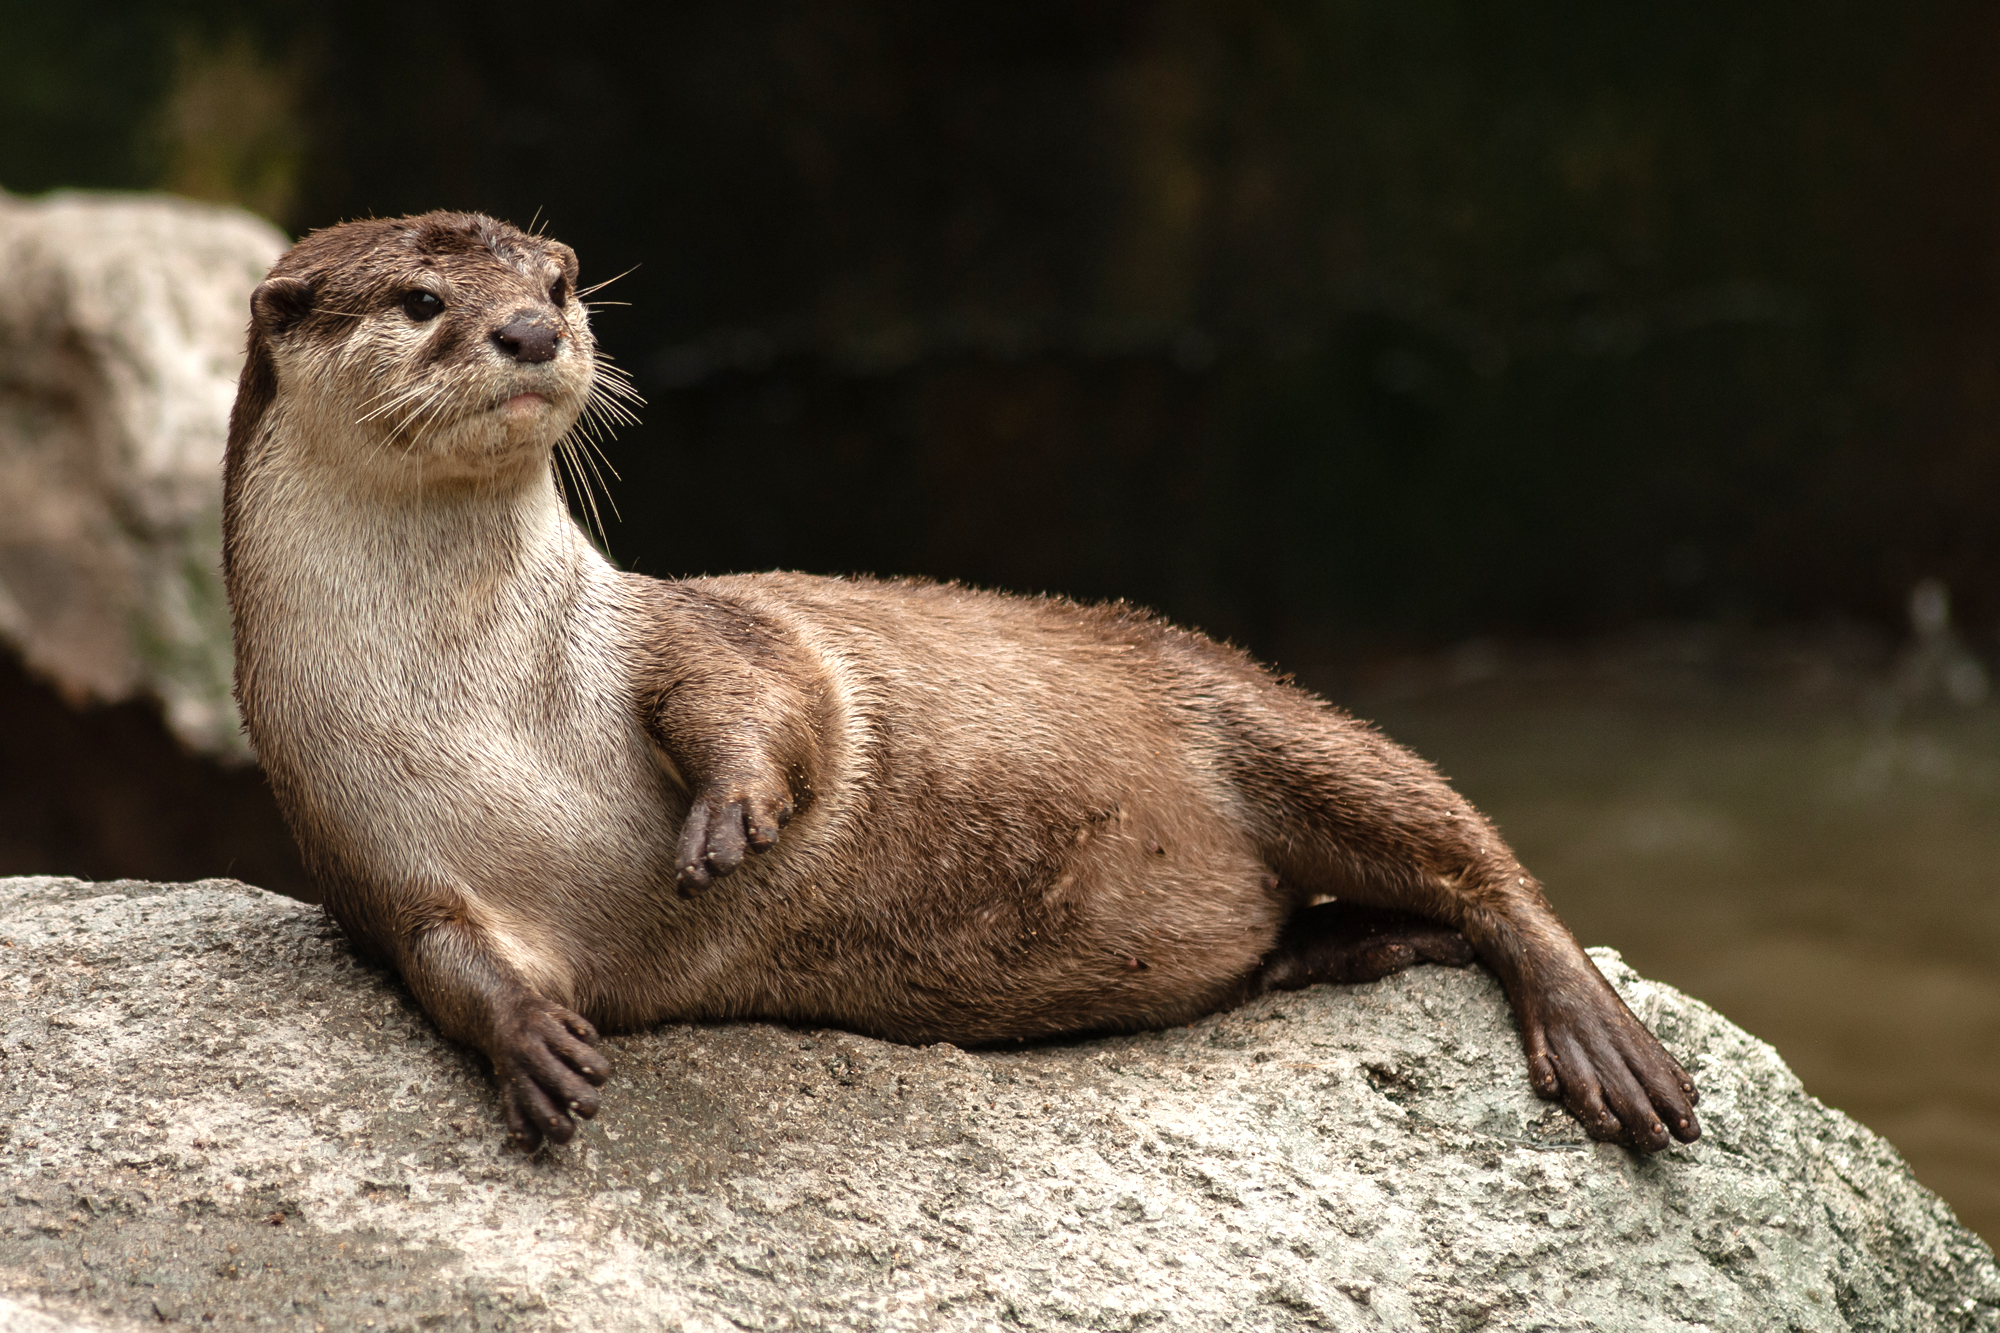 Aonyx cinereus (Asian Small-clawed Otter, Oriental Small-clawed Otter, Small-clawed Otter)